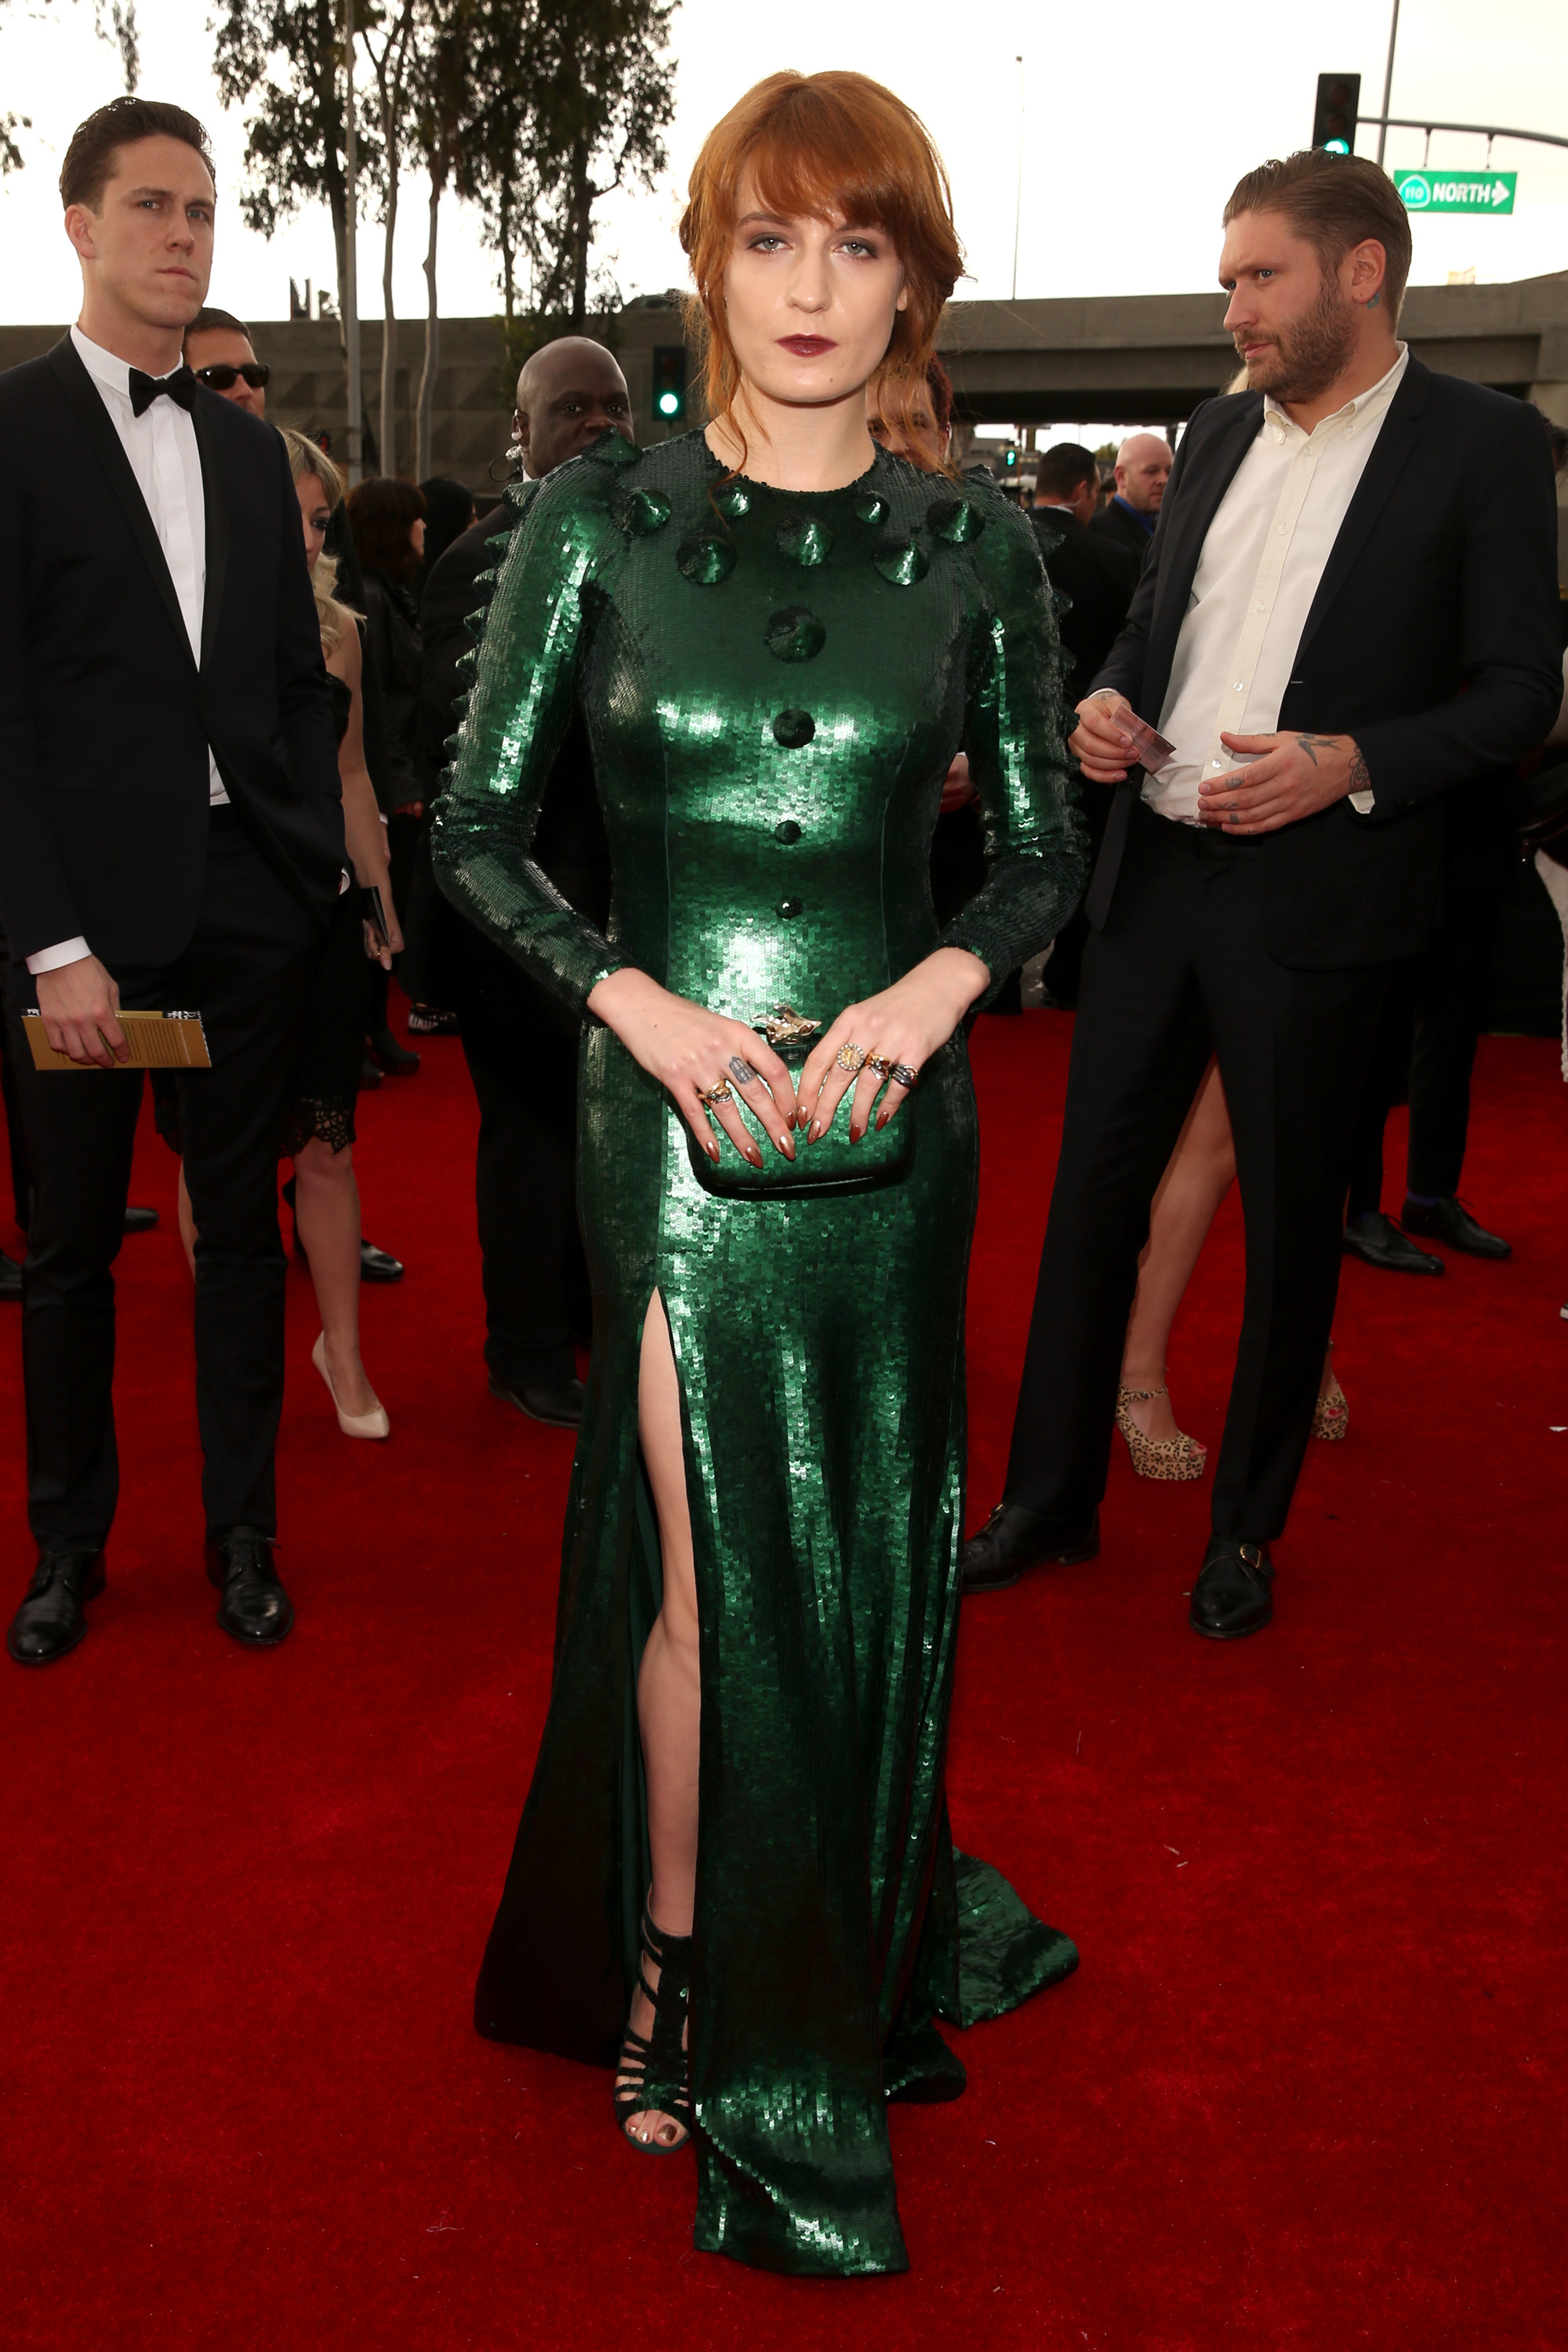 Florence Welch wore a green Givenchy gown for the 2013 Grammys.